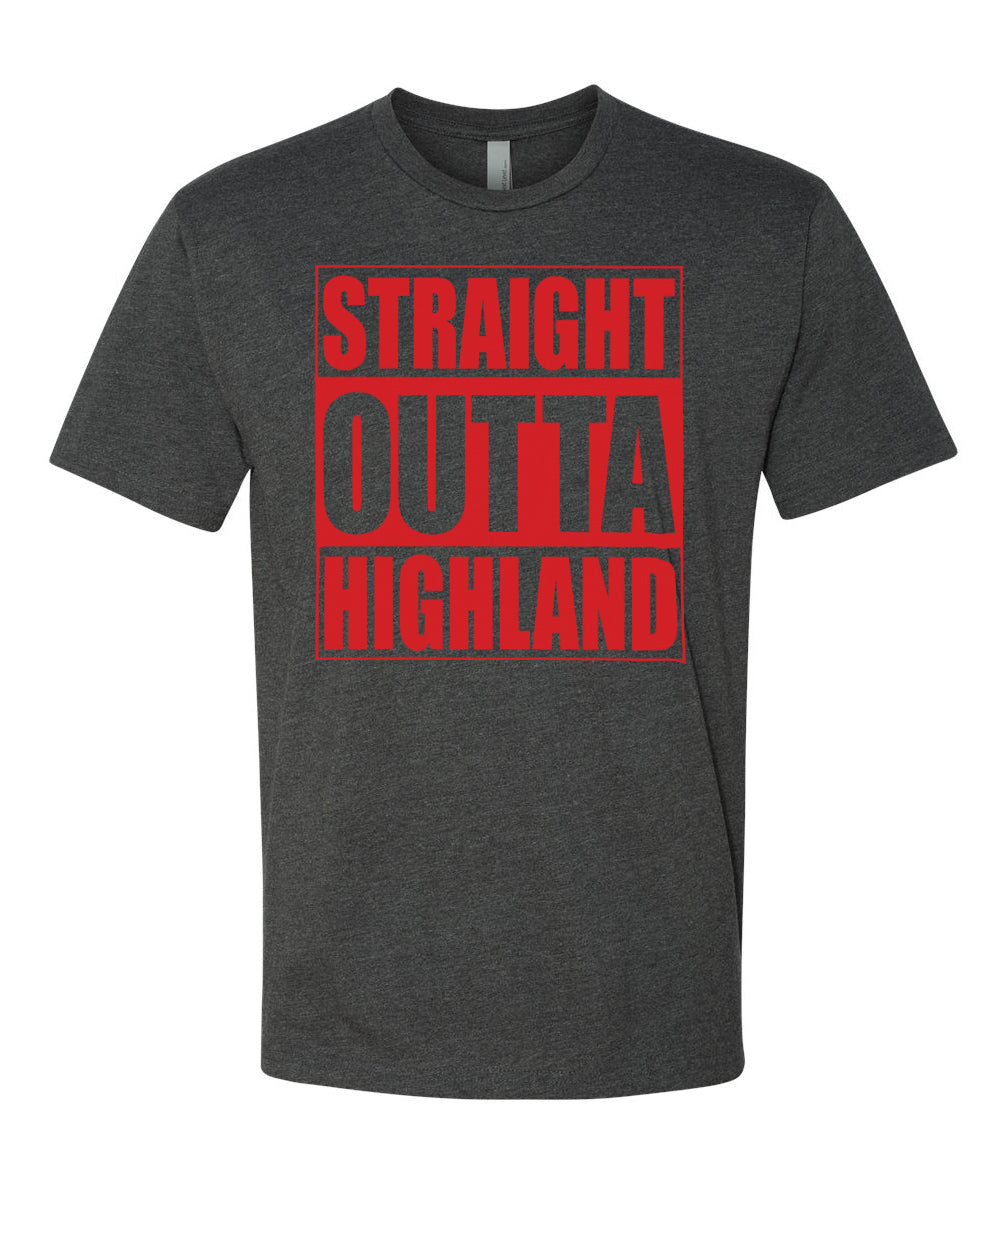 HIGHLAND HS – Next Level Fitted Crew Tee – Straight Outta Highland (Red/Charcoal)